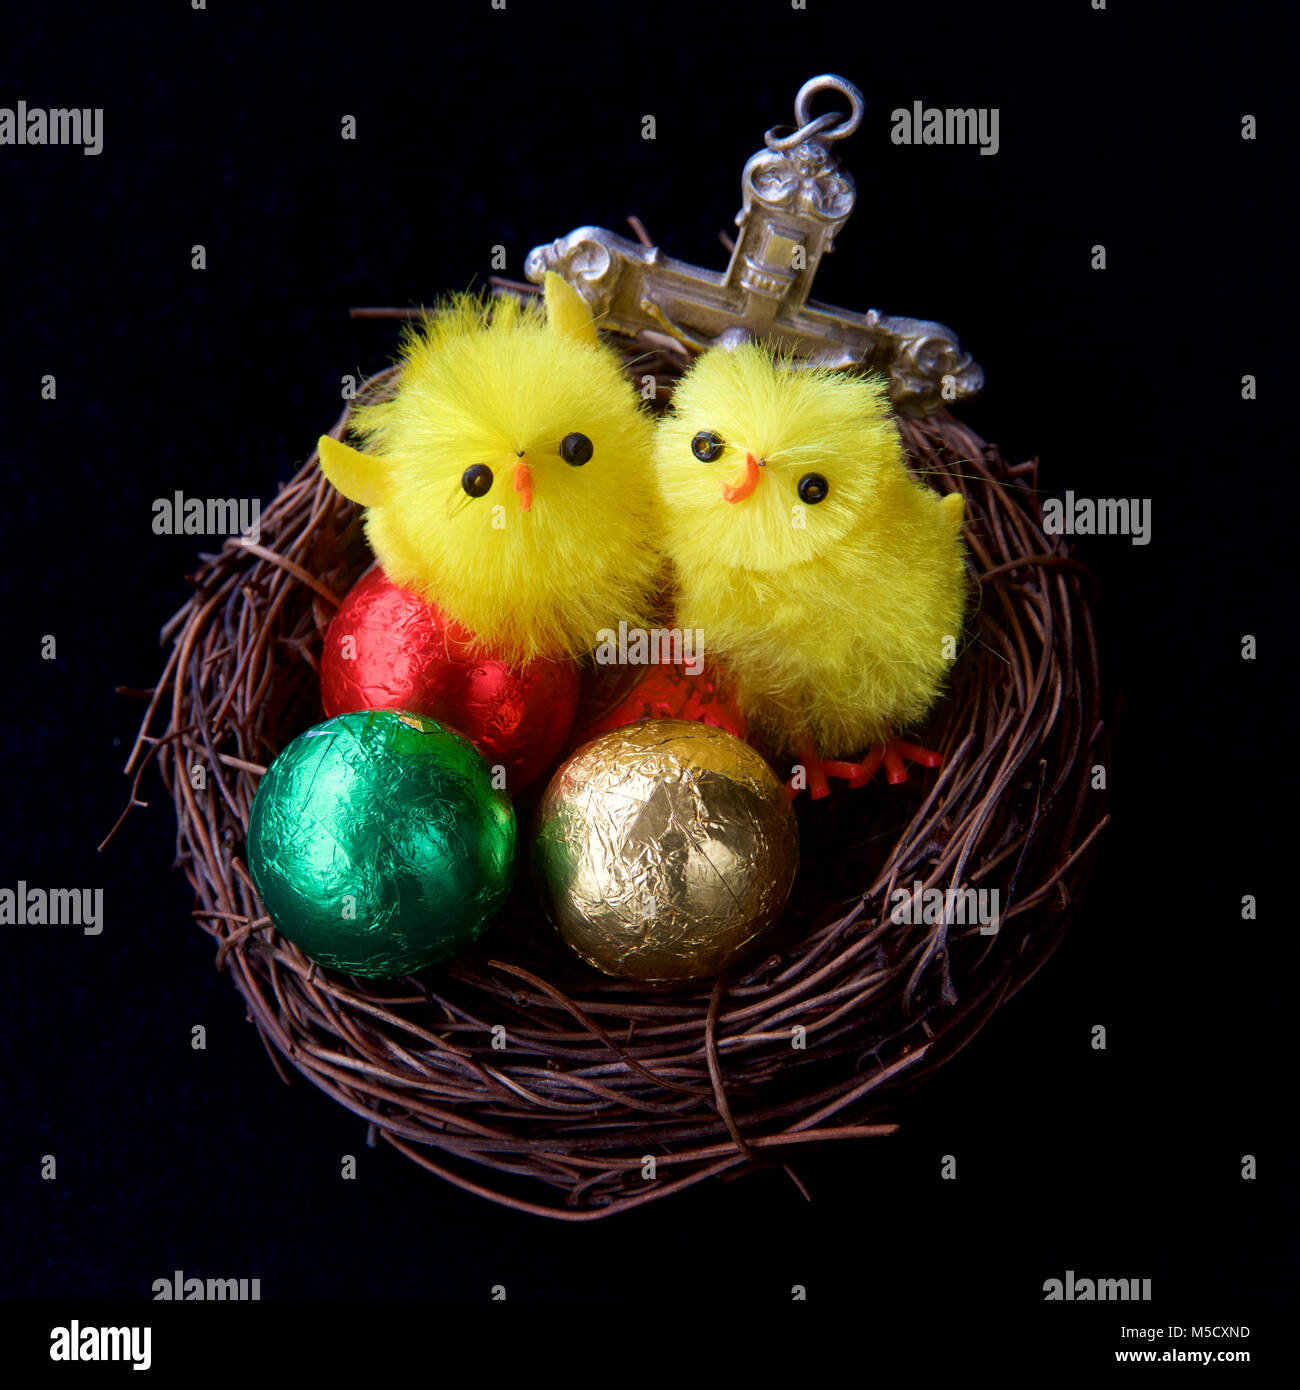 Two young chickens in a nest with eggs and a cross at Easter. - Stock Image